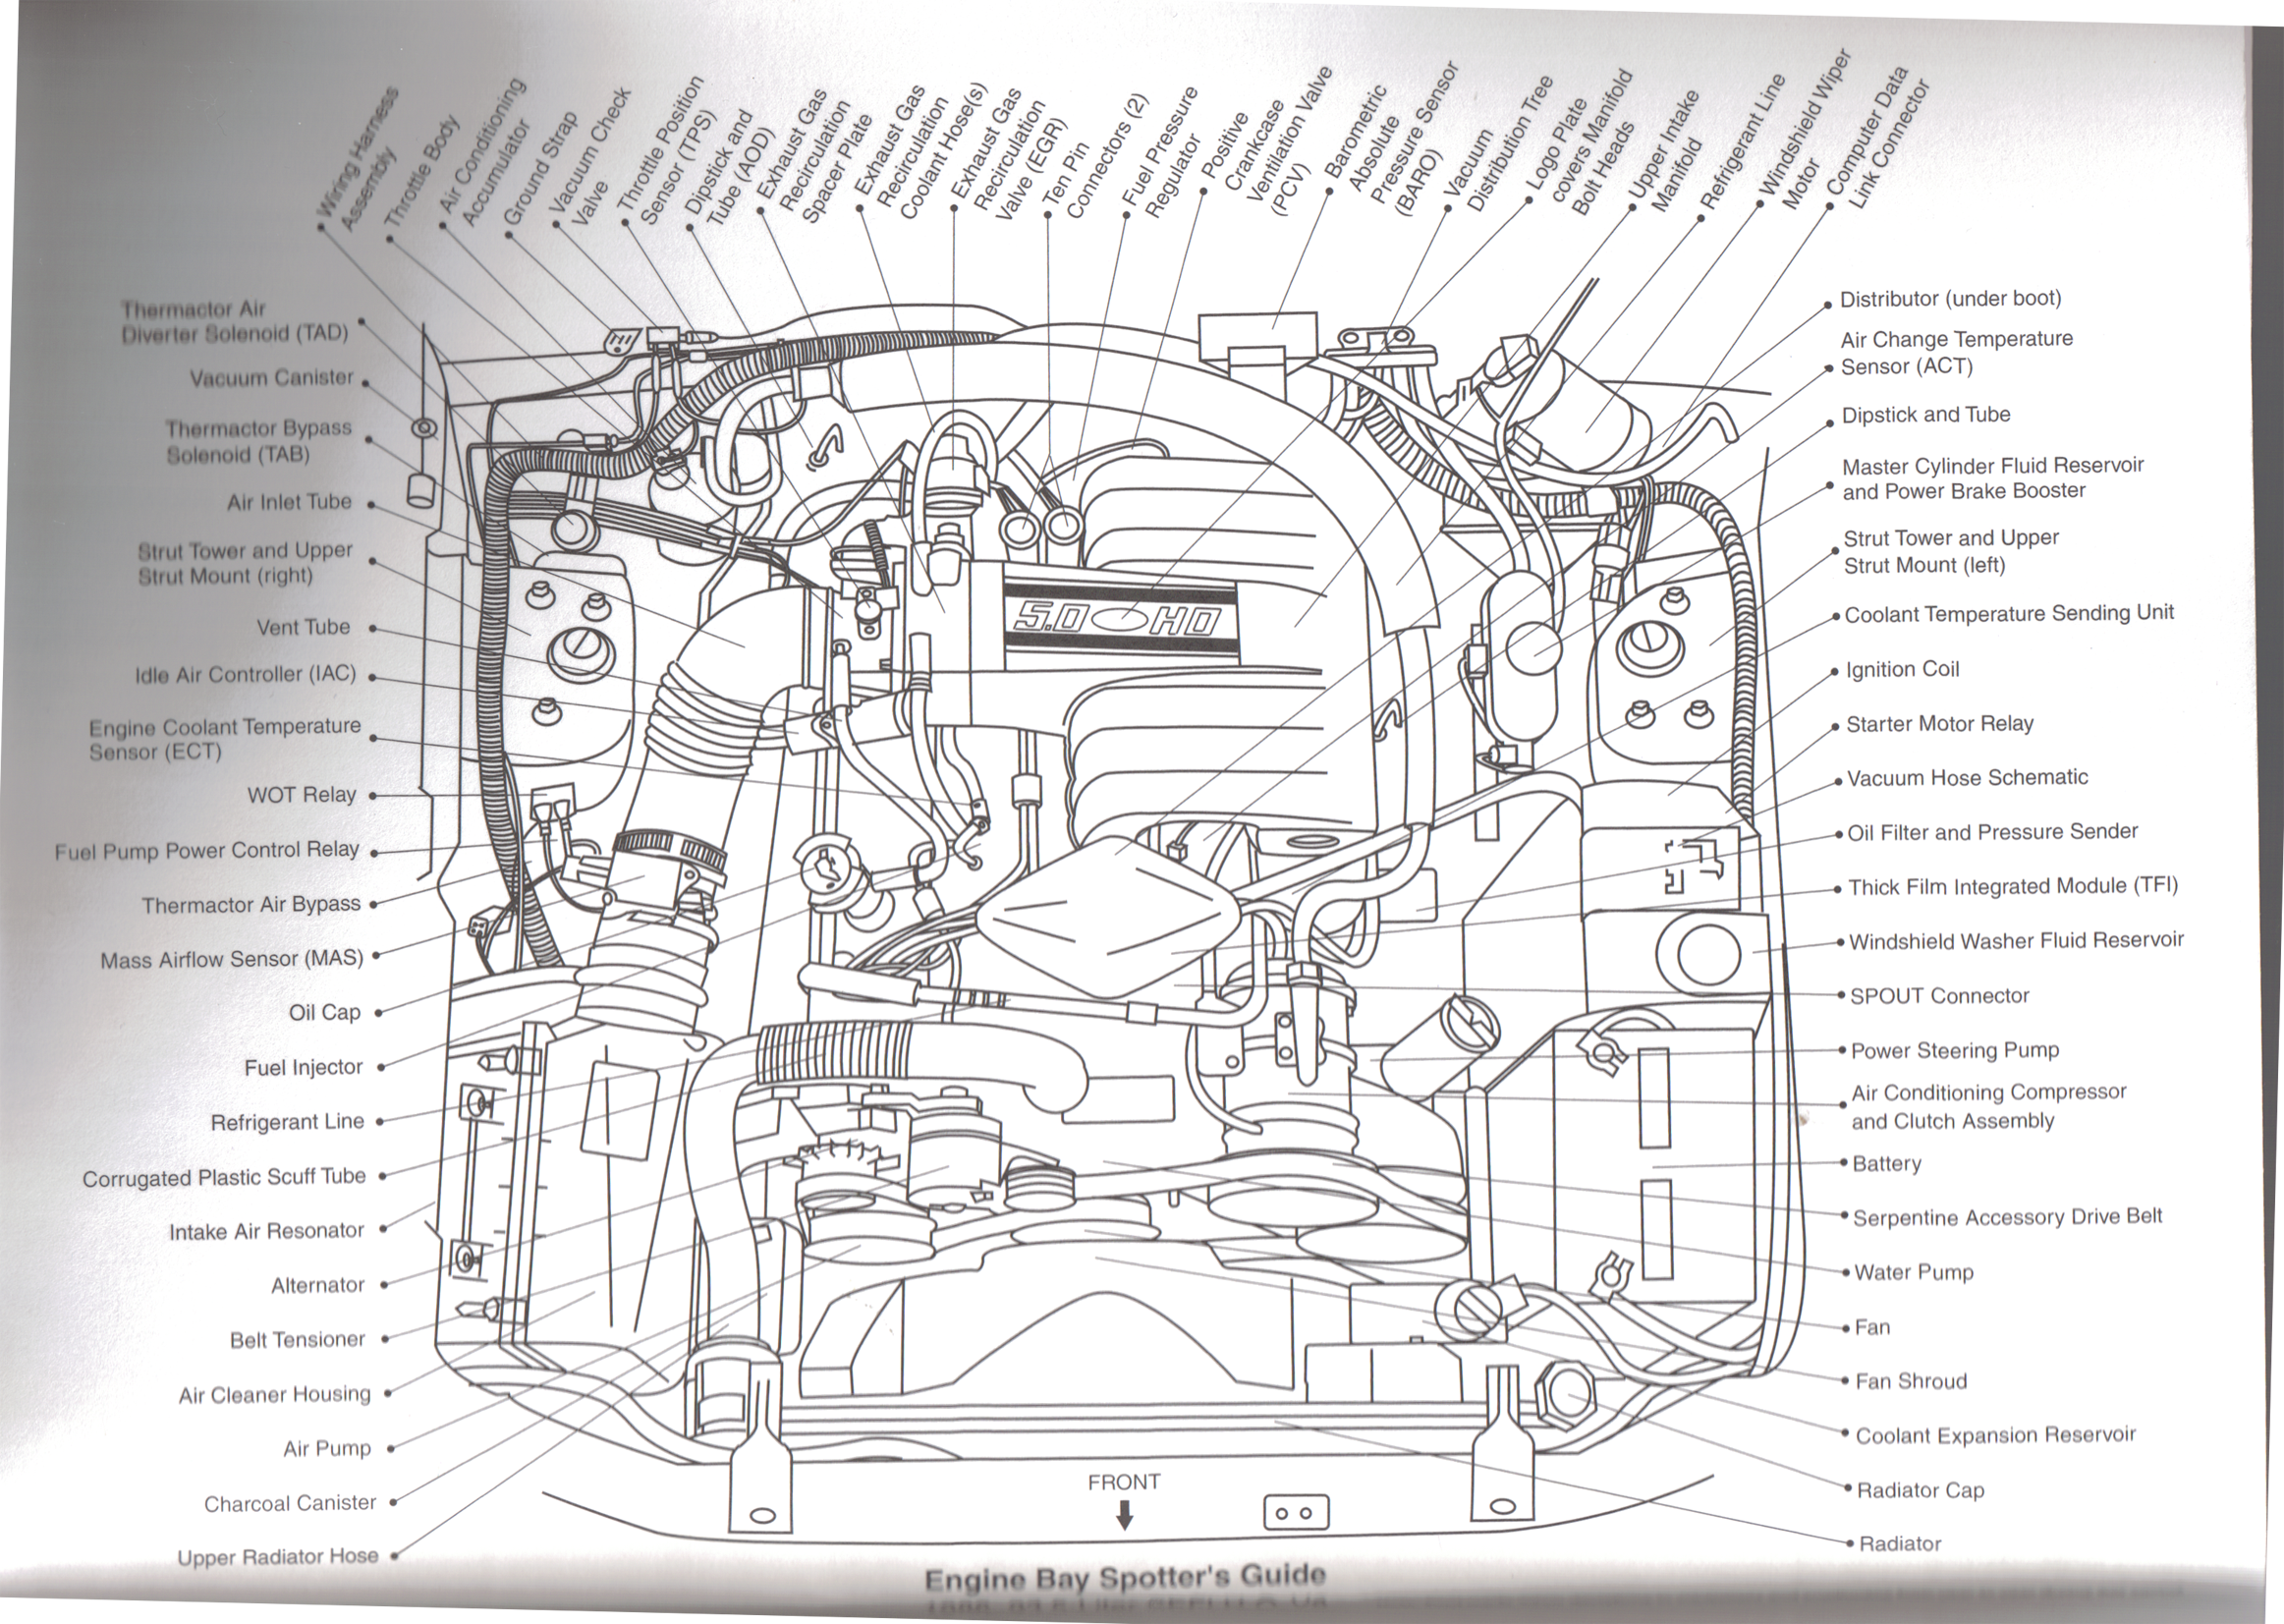 02 Ford Mustang Wiring Diagrams Engine Control Diagram. 2002 Ford Mustang Engine Diagram Wiring Diagrams Rh 1 Crocodilecruisedarwin 02 Fuel Pump. Wiring. 1969 Mustang Engine Vacuum Diagram At Scoala.co